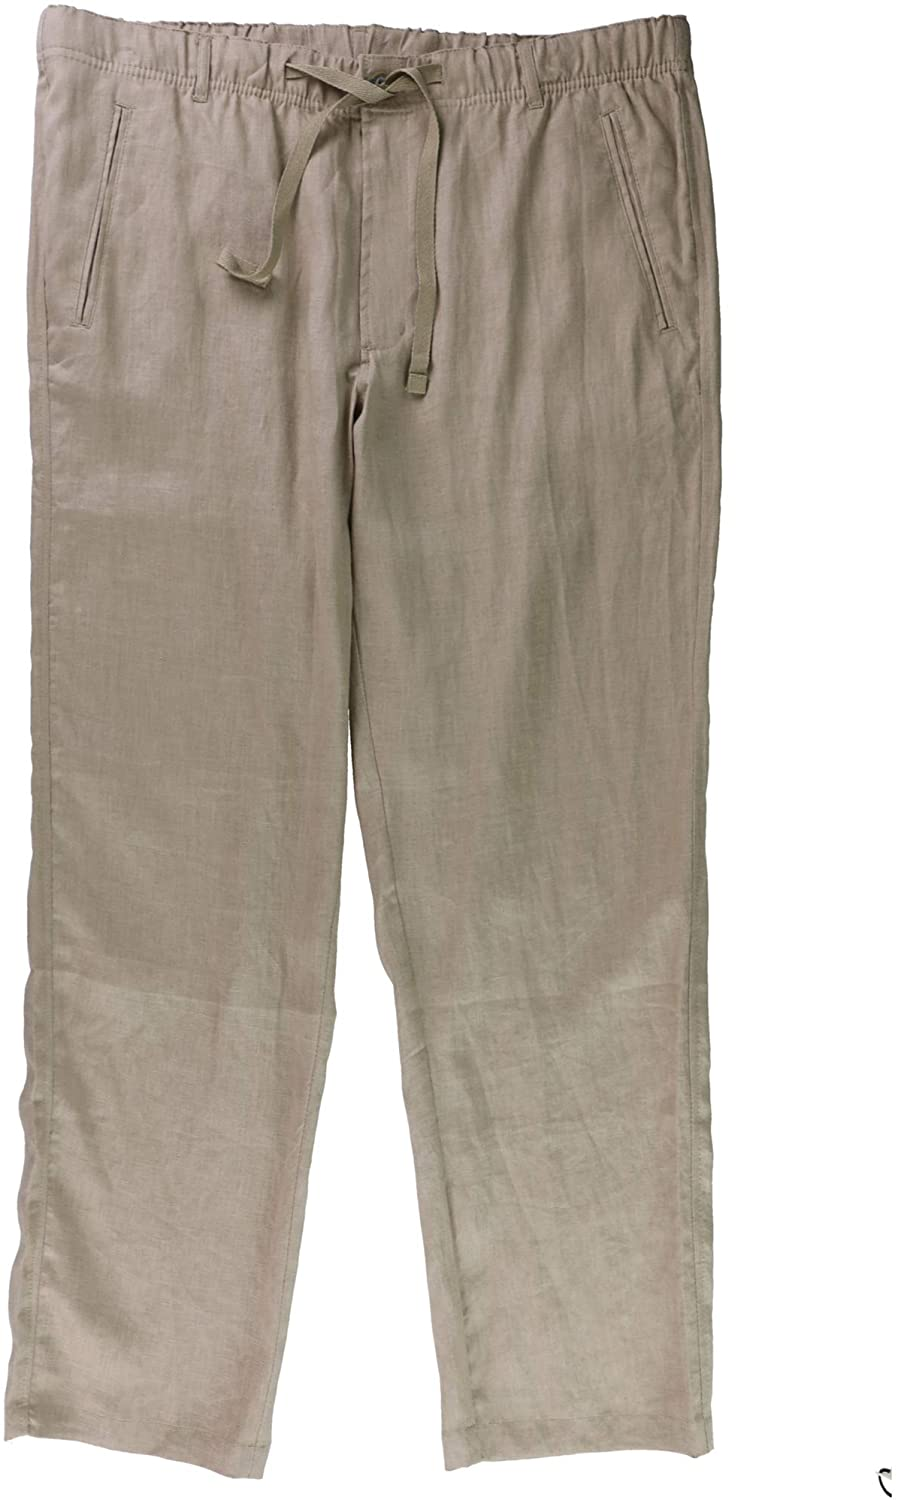 Tasso Elba Mens Drawstring Casual Linen Pants